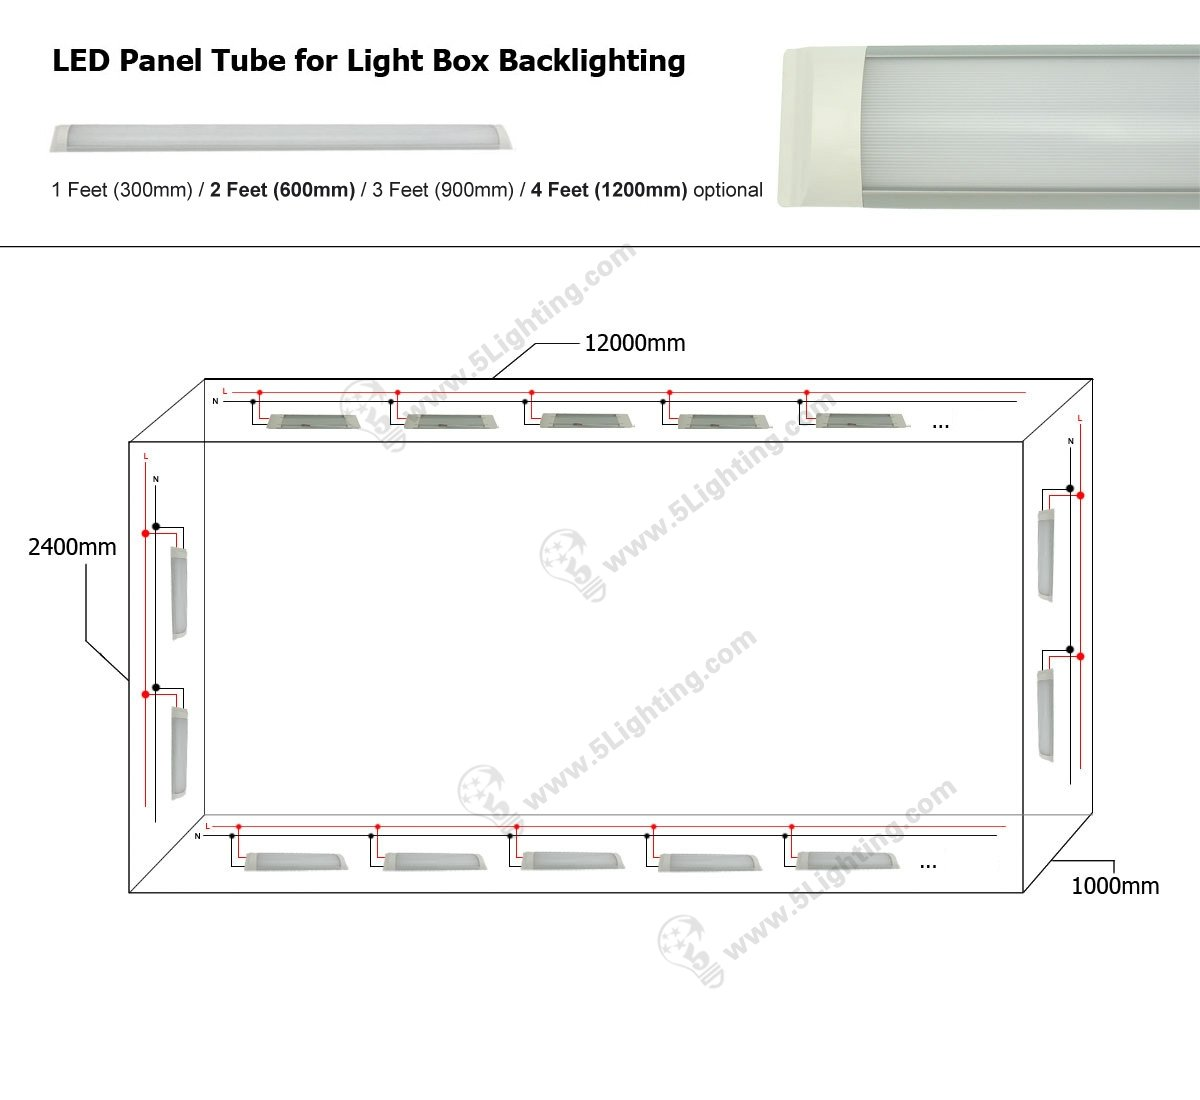 LED Panel Tube for Light Box Backlighting